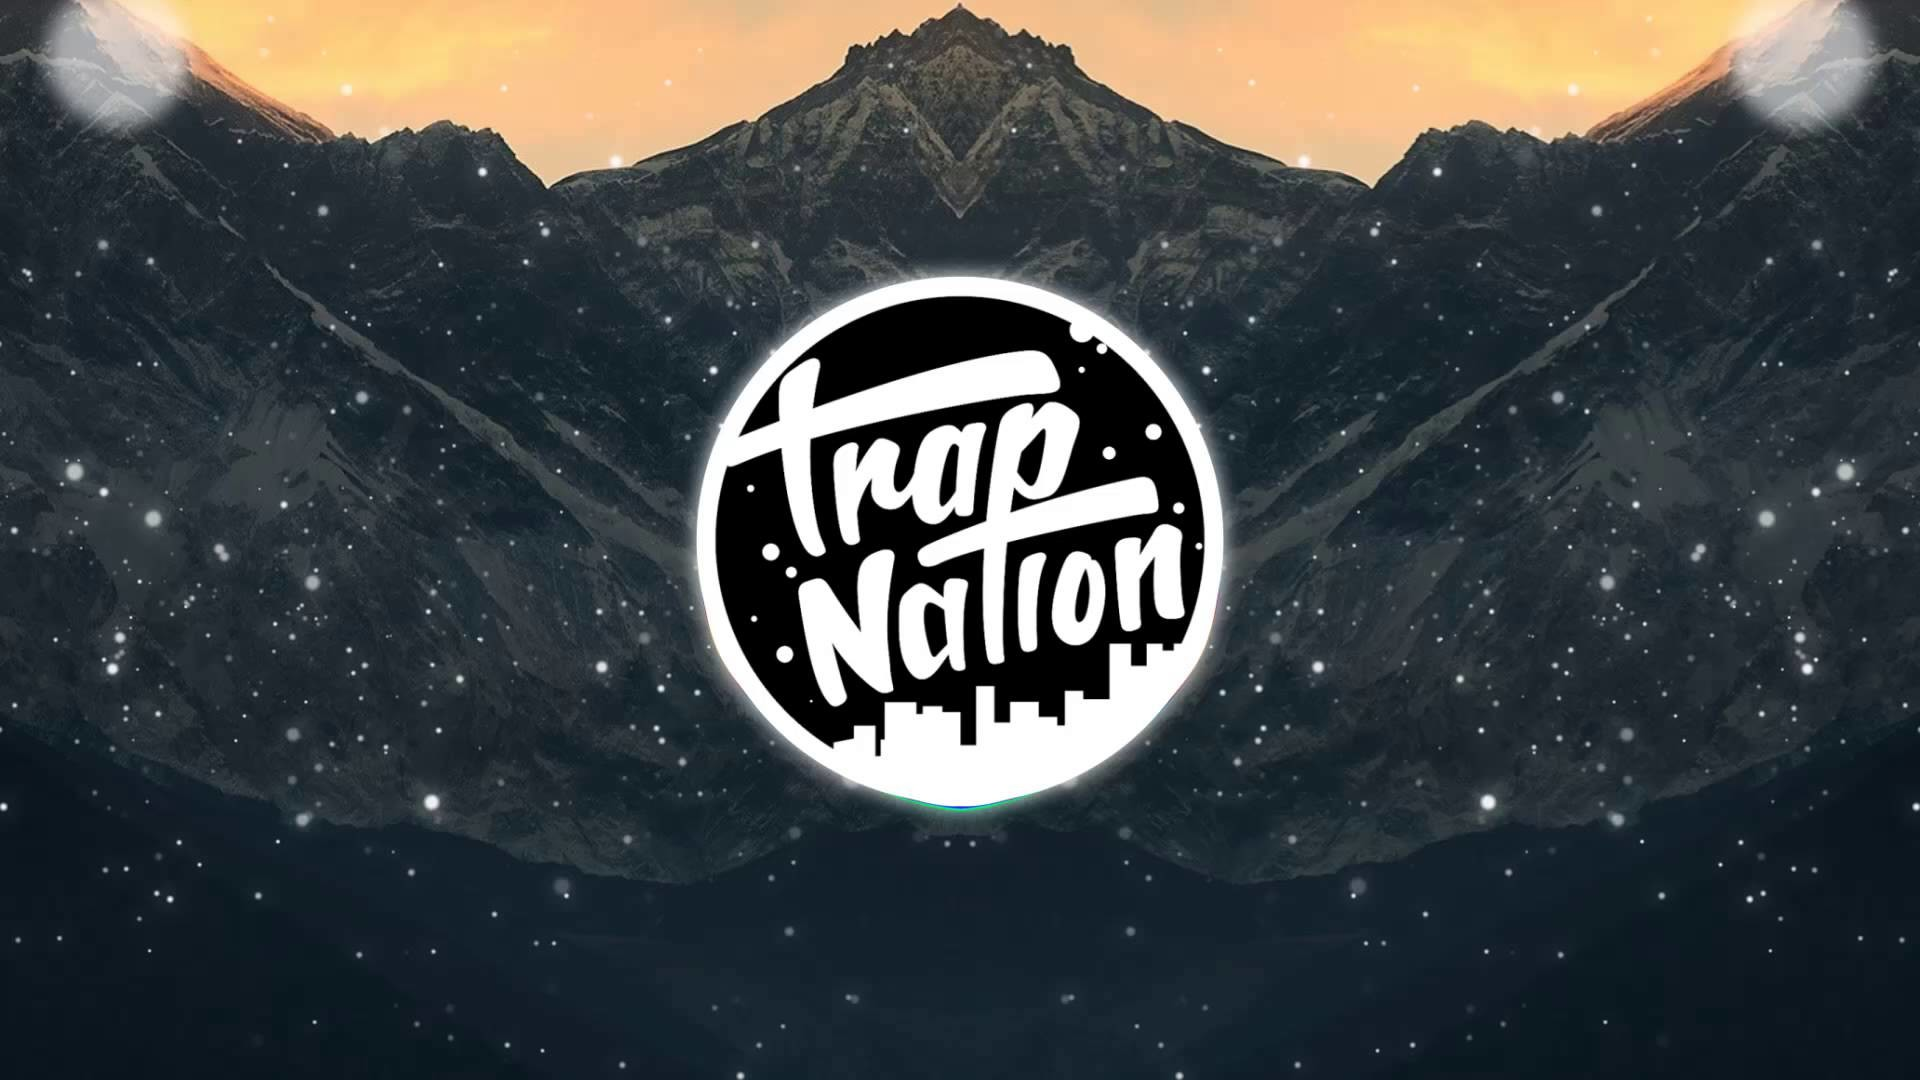 Trap Nation Wallpapers 79 Images